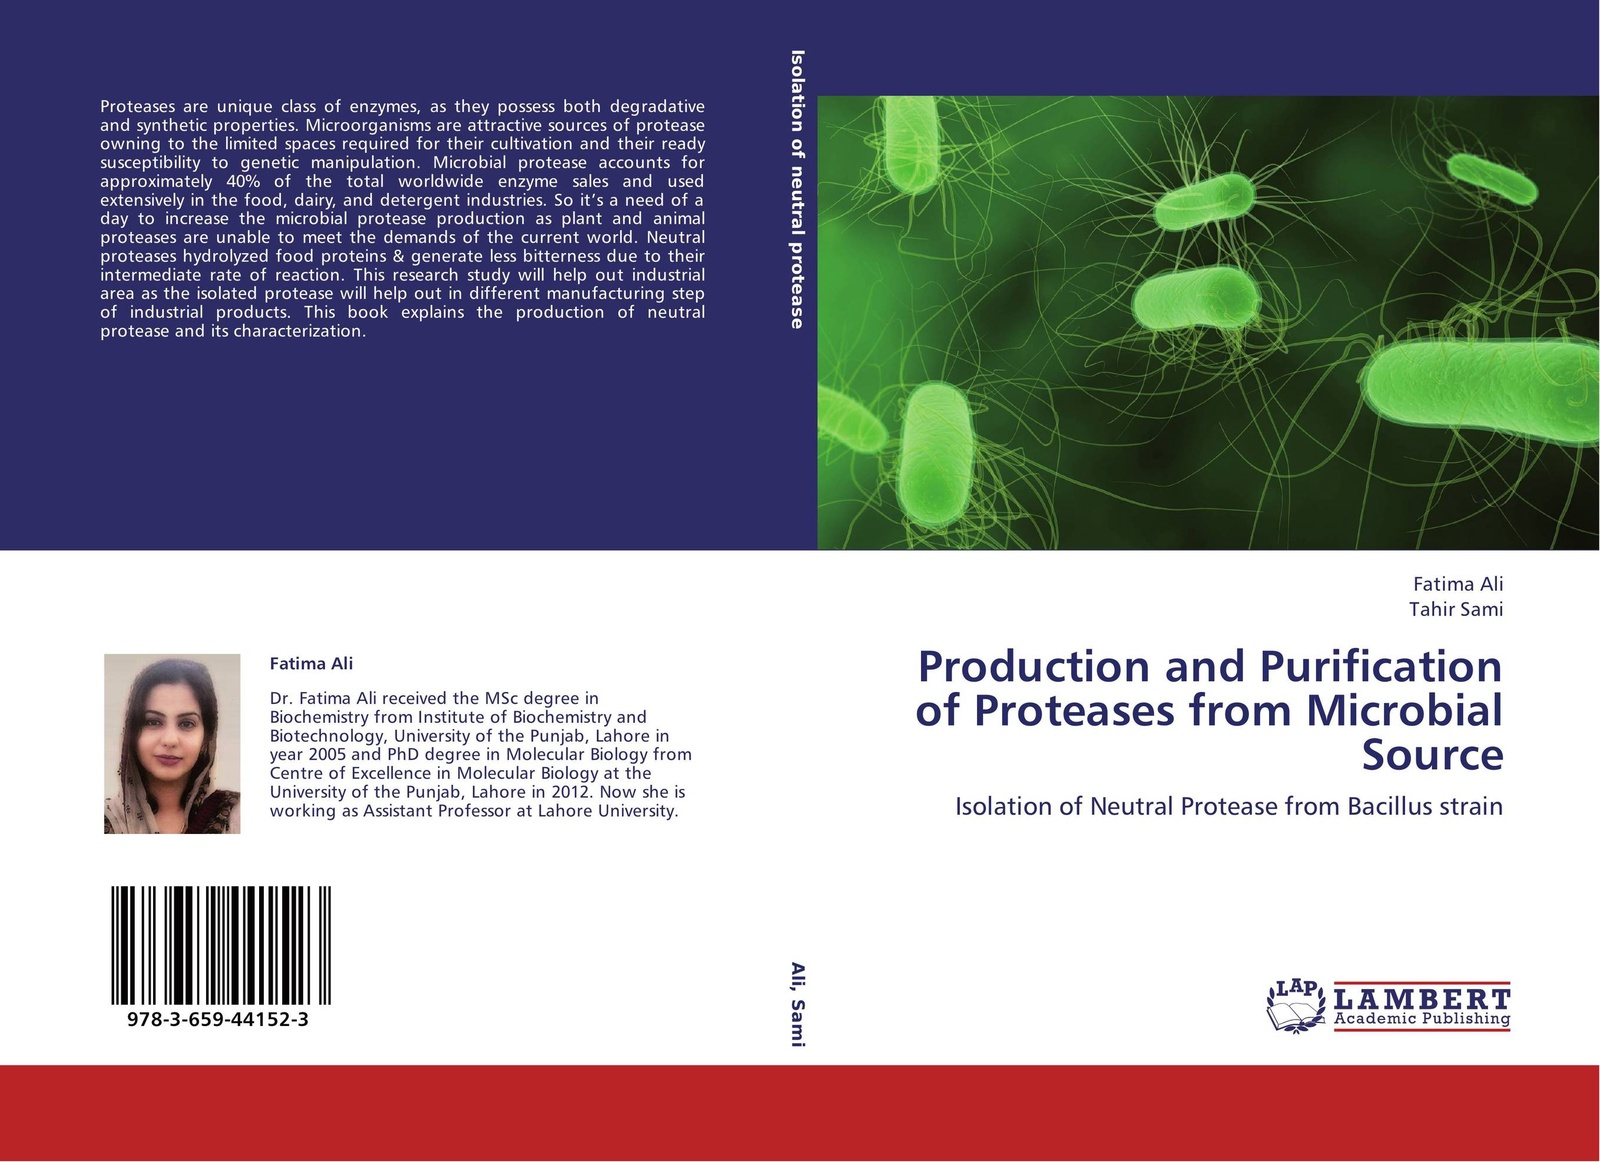 Fatima Ali and Tahir Sami Production and Purification of Proteases from Microbial Source niels behrendt matrix proteases in health and disease